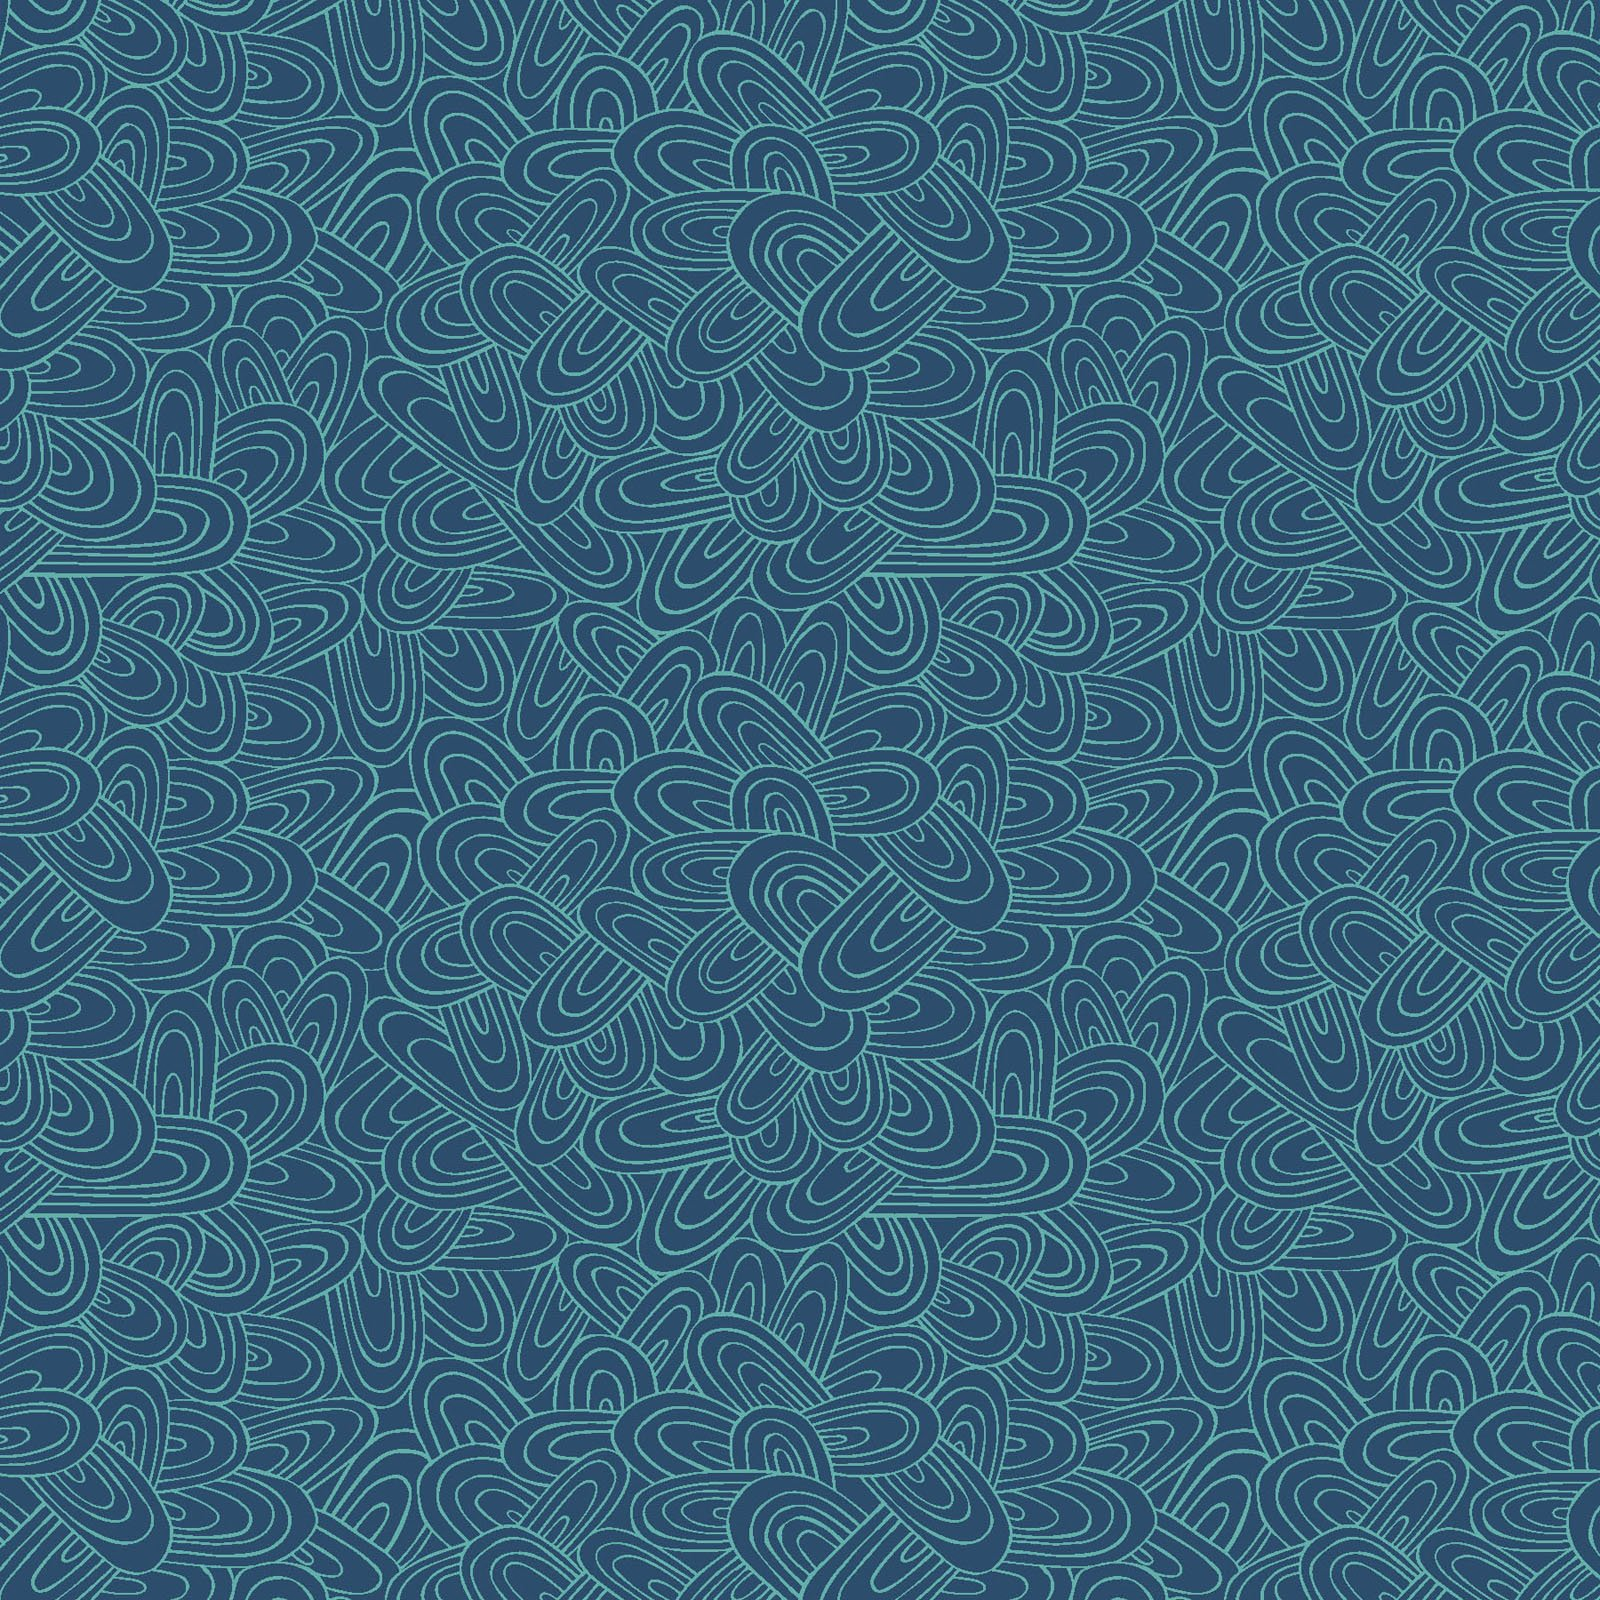 WHIM-4412 DT - WHIMSY BY HANG TIGHT STUDIO JUST SWELL DKTEAL